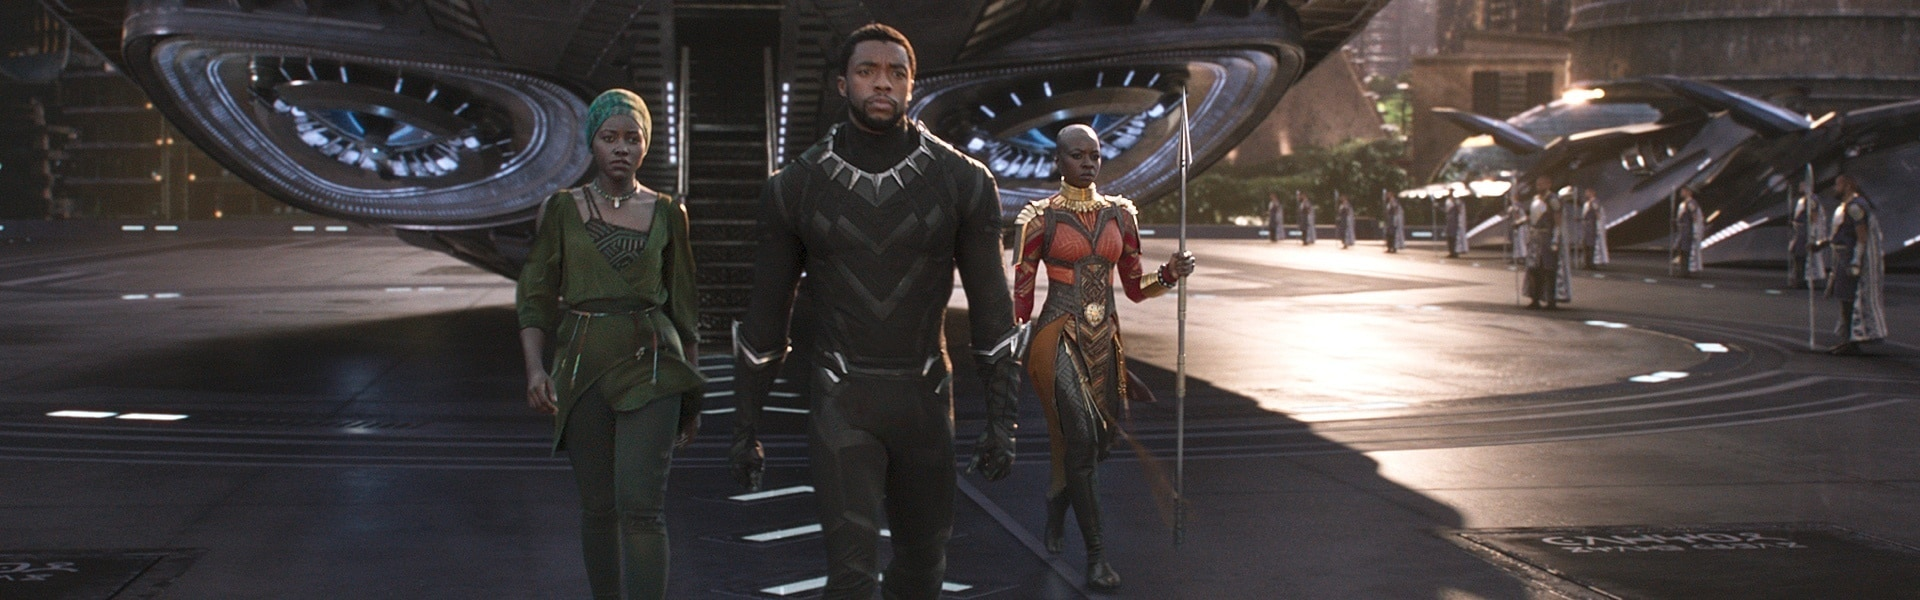 Black Panther, Nakia and Okoye walking in front of a spaceship in Wakanda